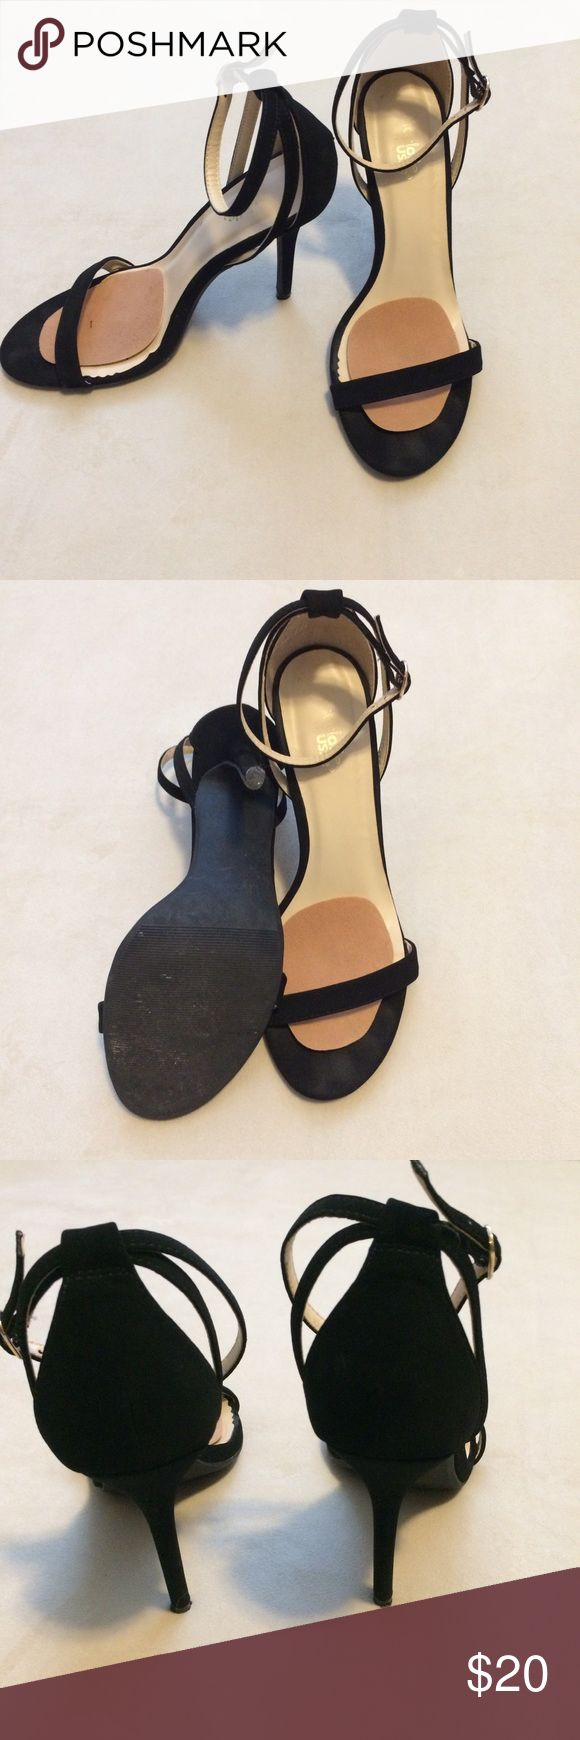 Faux Suede black strappy pumps I ❤️ these because they are so classic, can be worn with almost everything, if not everything, I just realized I had like 10 pairs of black strappy shoes and these were the least worn--only worn a couple times!! 4 inch heel🙌🏼😎 Charlotte Russe Shoes Heels